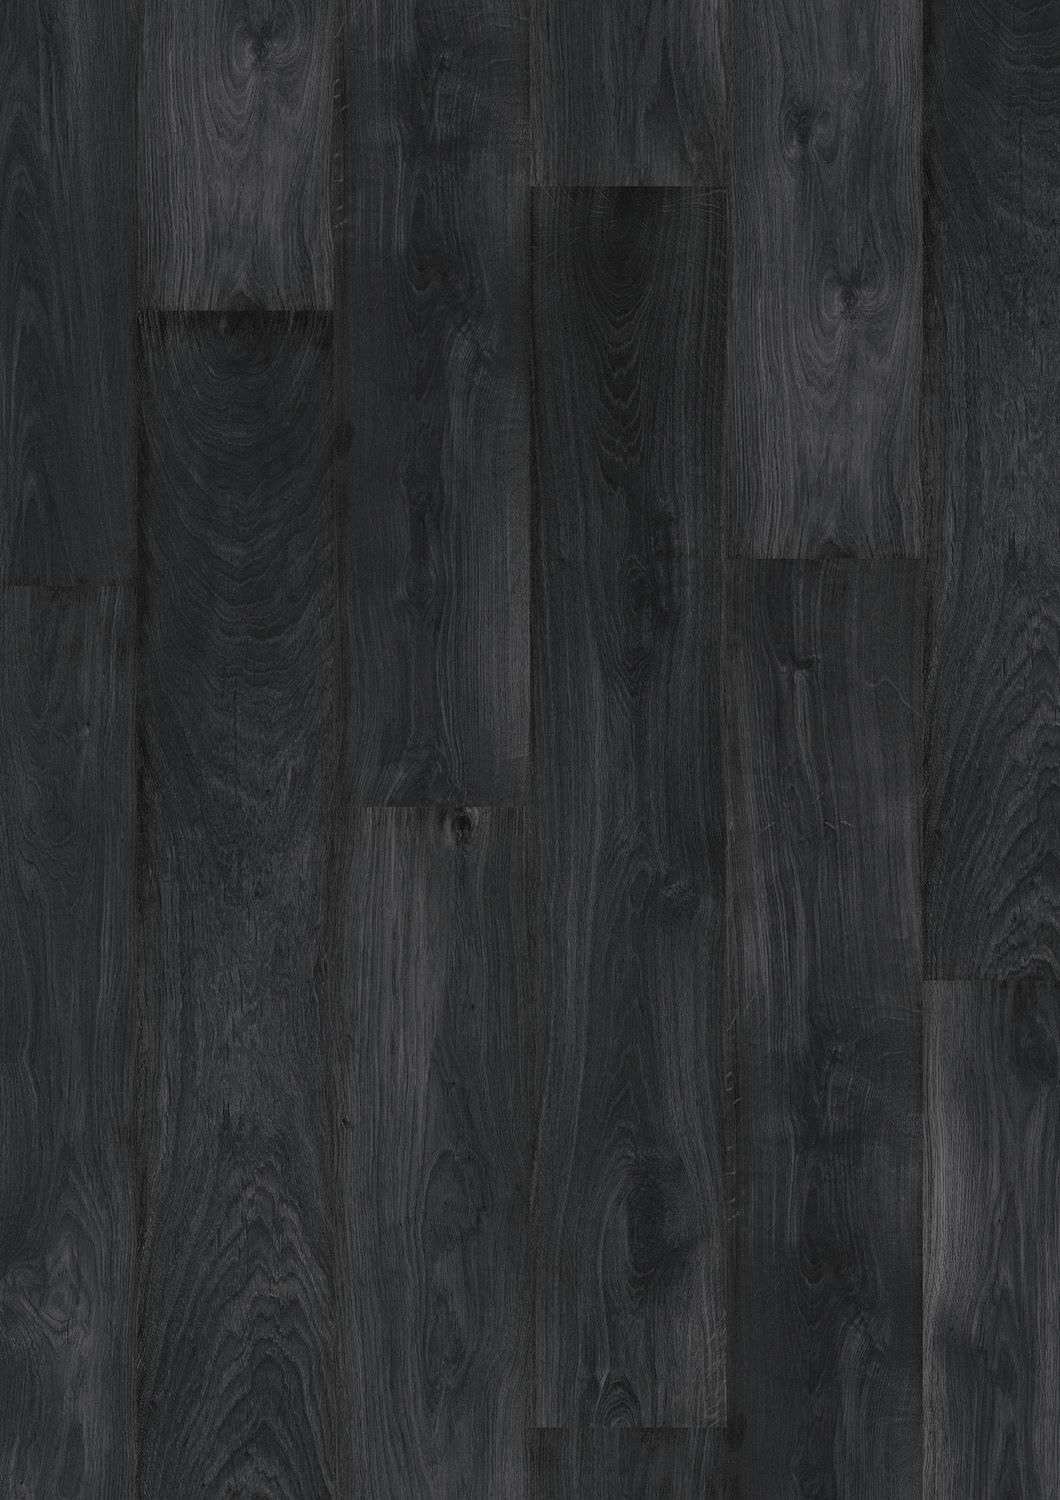 Black Oak Wooden Flooring